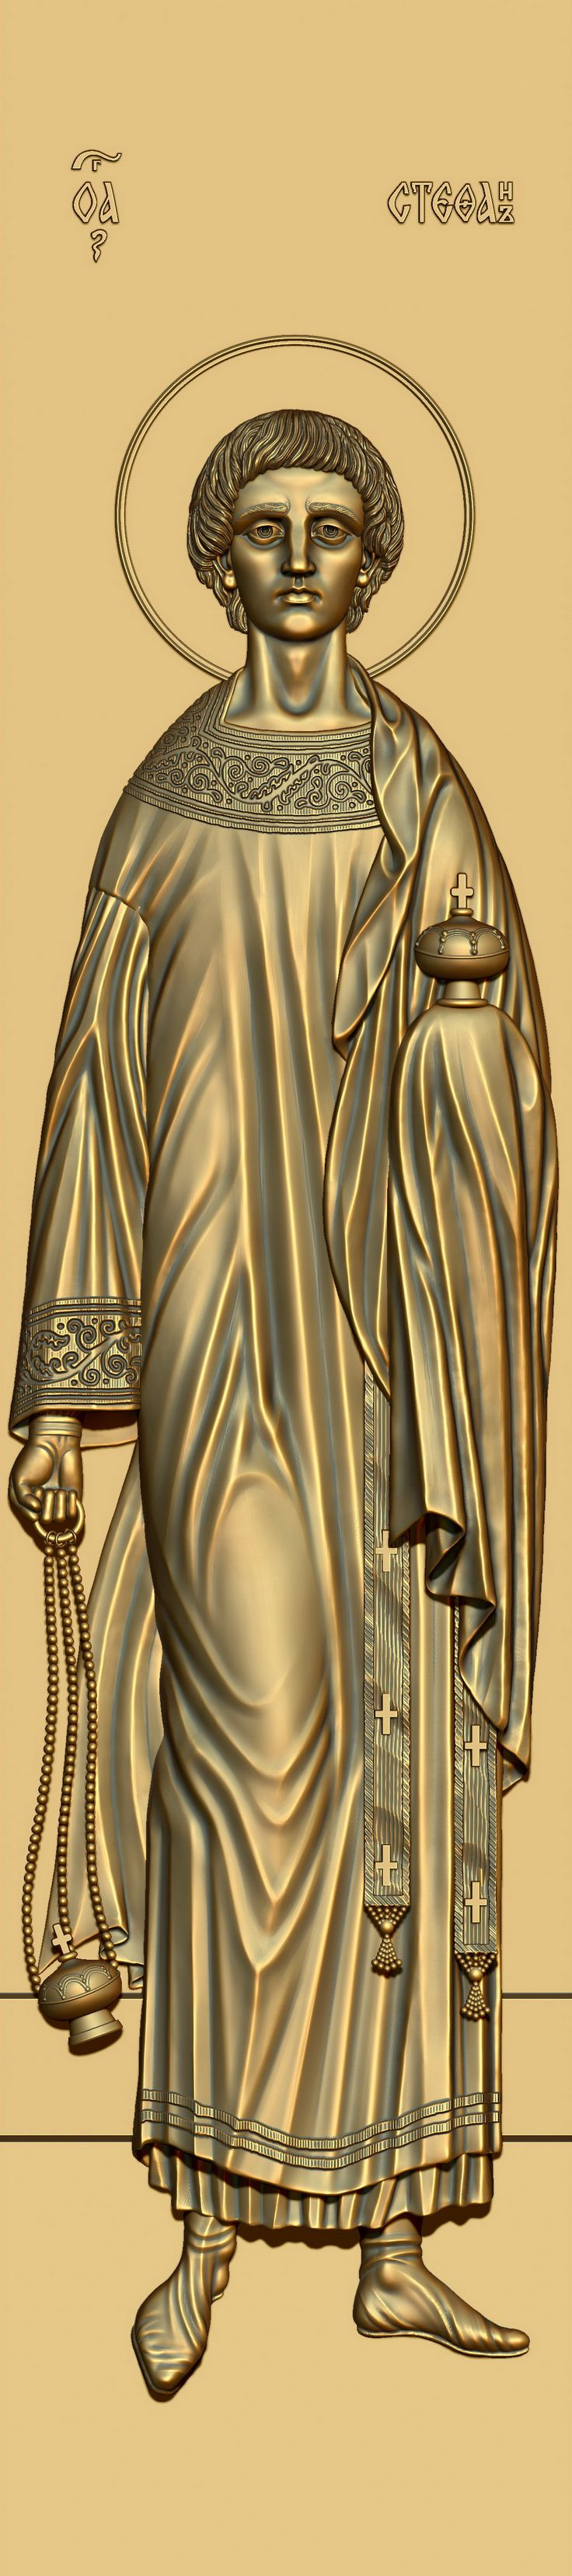 Holy Apostle Protomartyr Archdeacon Stefan. 3D model for CNC milling machine. Simulation programs: MoI, ArtCam, ZBrush. Private order.